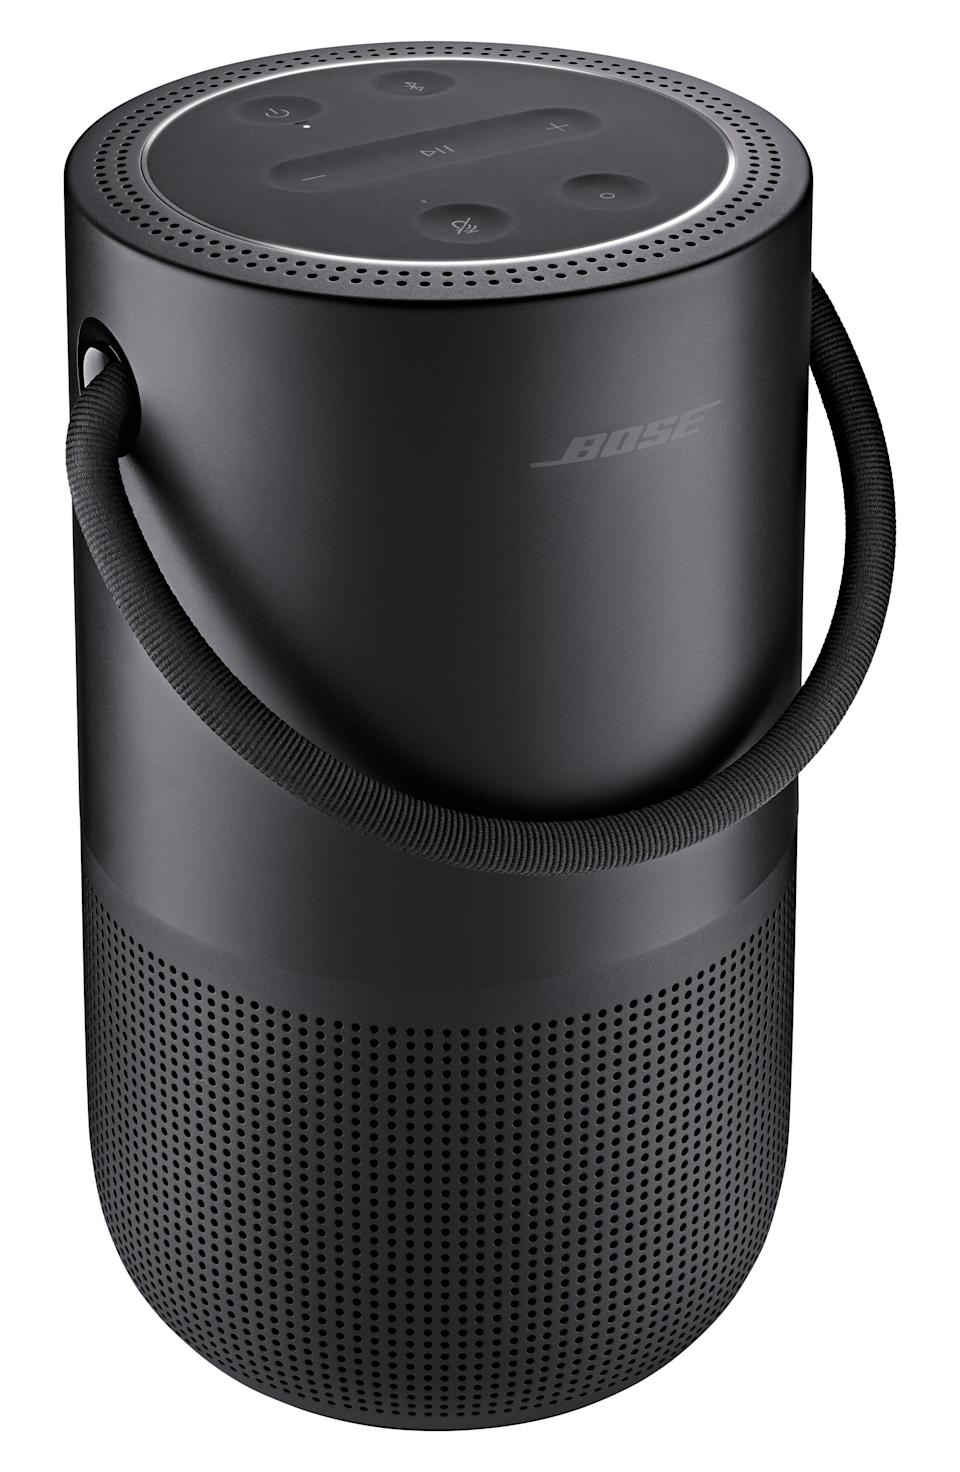 """<p><strong>BOSE</strong></p><p>nordstrom.com</p><p><strong>$299.00</strong></p><p><a href=""""https://go.redirectingat.com?id=74968X1596630&url=https%3A%2F%2Fshop.nordstrom.com%2Fs%2Fbose-portable-home-bluetooth-speaker%2F5438406&sref=https%3A%2F%2Fwww.cosmopolitan.com%2Fstyle-beauty%2Ffashion%2Fg27349308%2Fnew-dad-gift-ideas%2F"""" rel=""""nofollow noopener"""" target=""""_blank"""" data-ylk=""""slk:Shop Now"""" class=""""link rapid-noclick-resp"""">Shop Now</a></p><p>This lil fella might be small, but it produces a lot of sound. And it's waterproof, so no worries if water (or spit up) accidentally gets on it. </p>"""